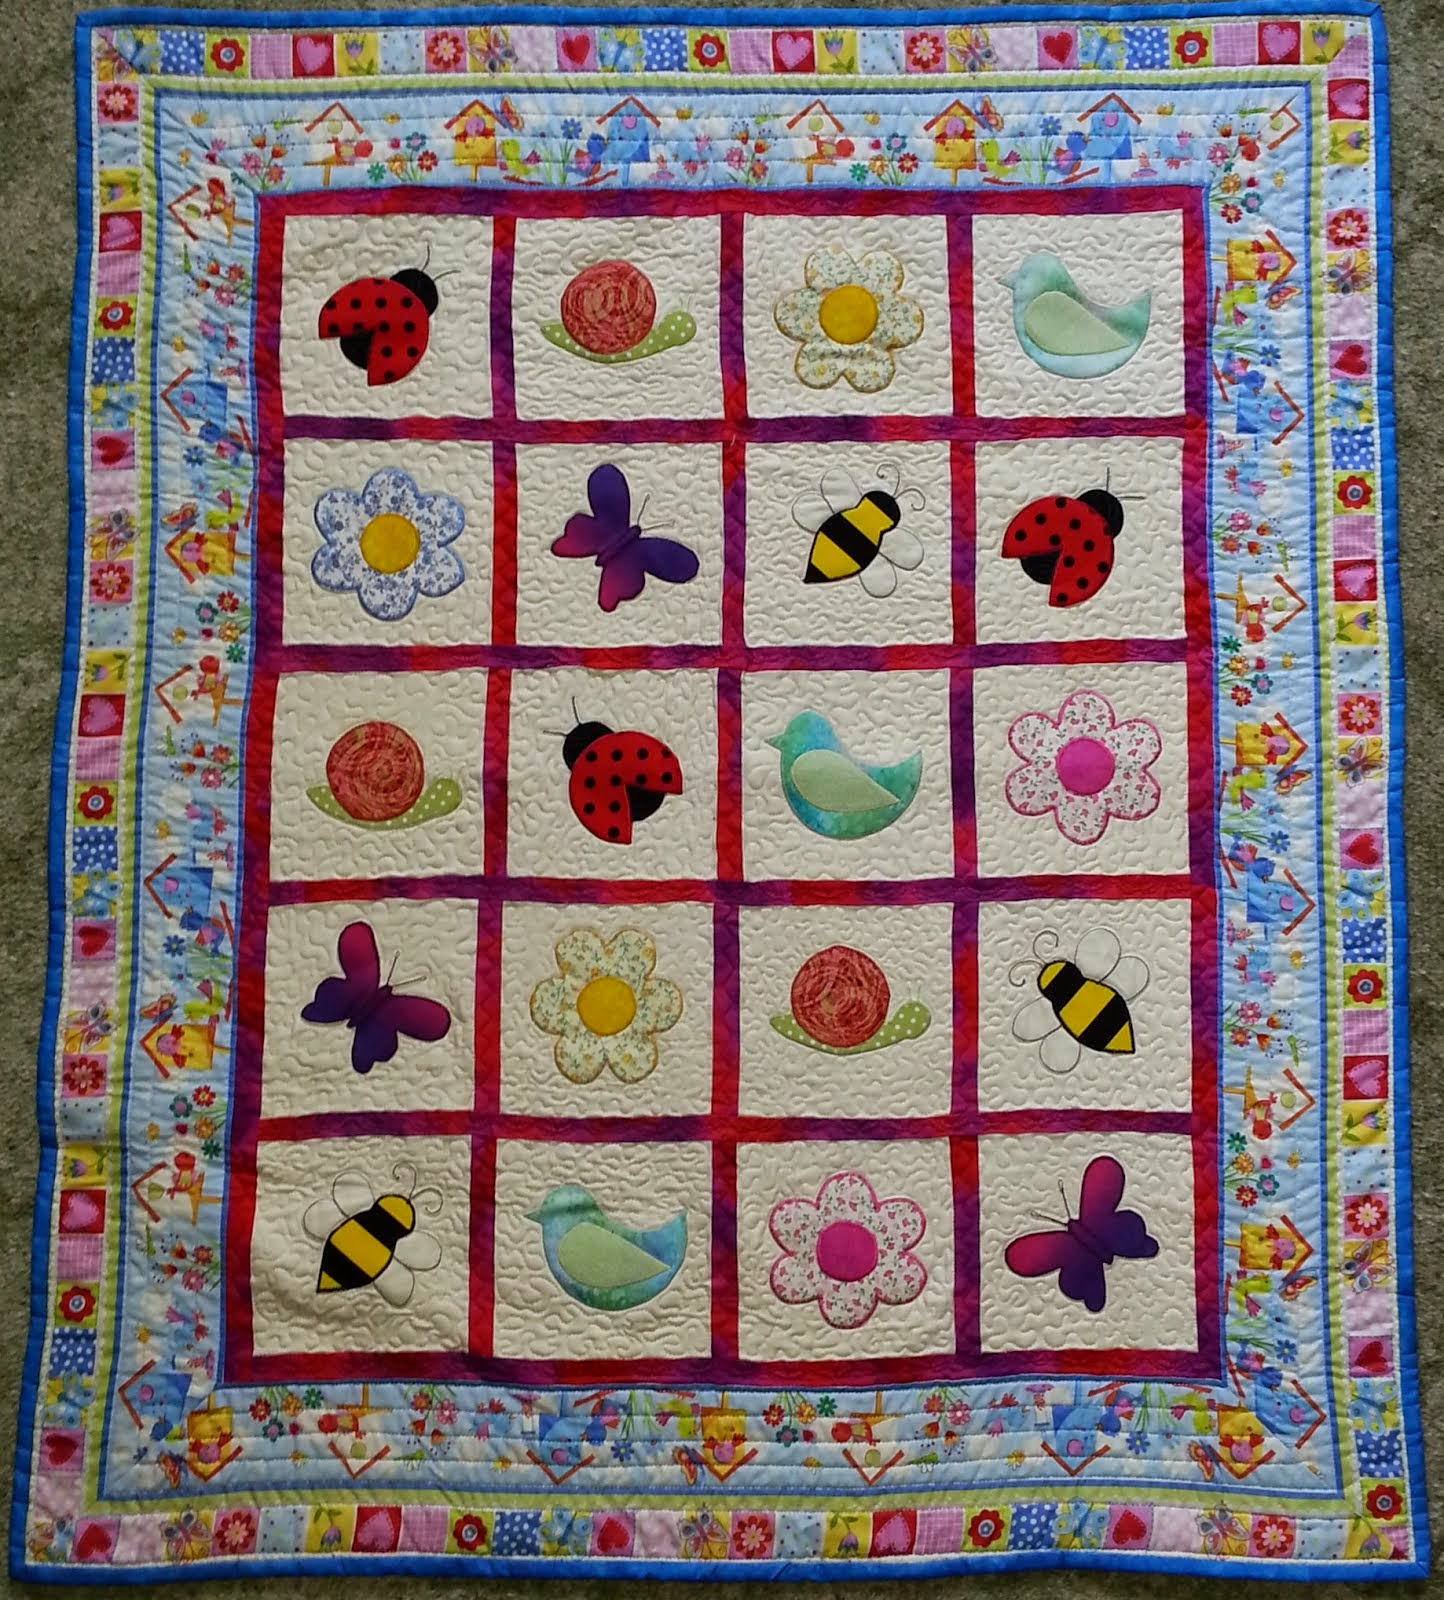 BIRDS & BEES PLAYMAT